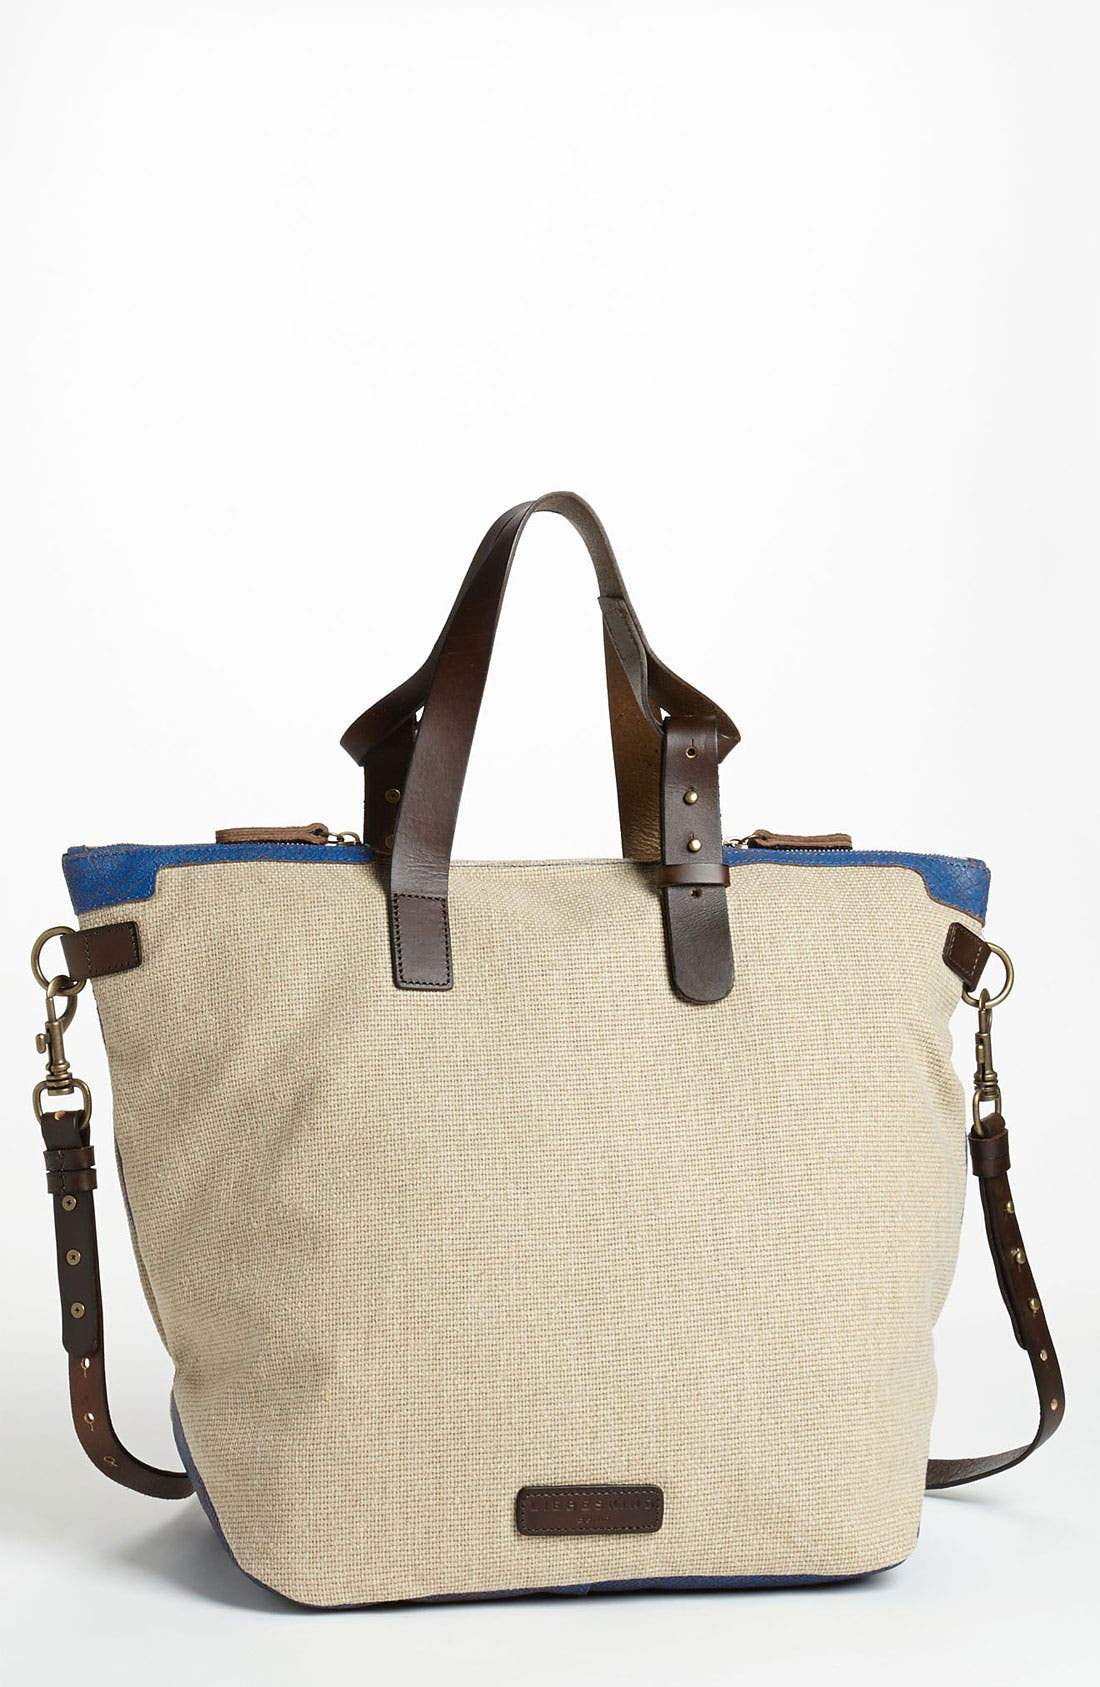 Main Image - Liebeskind 'Palermo' Tote